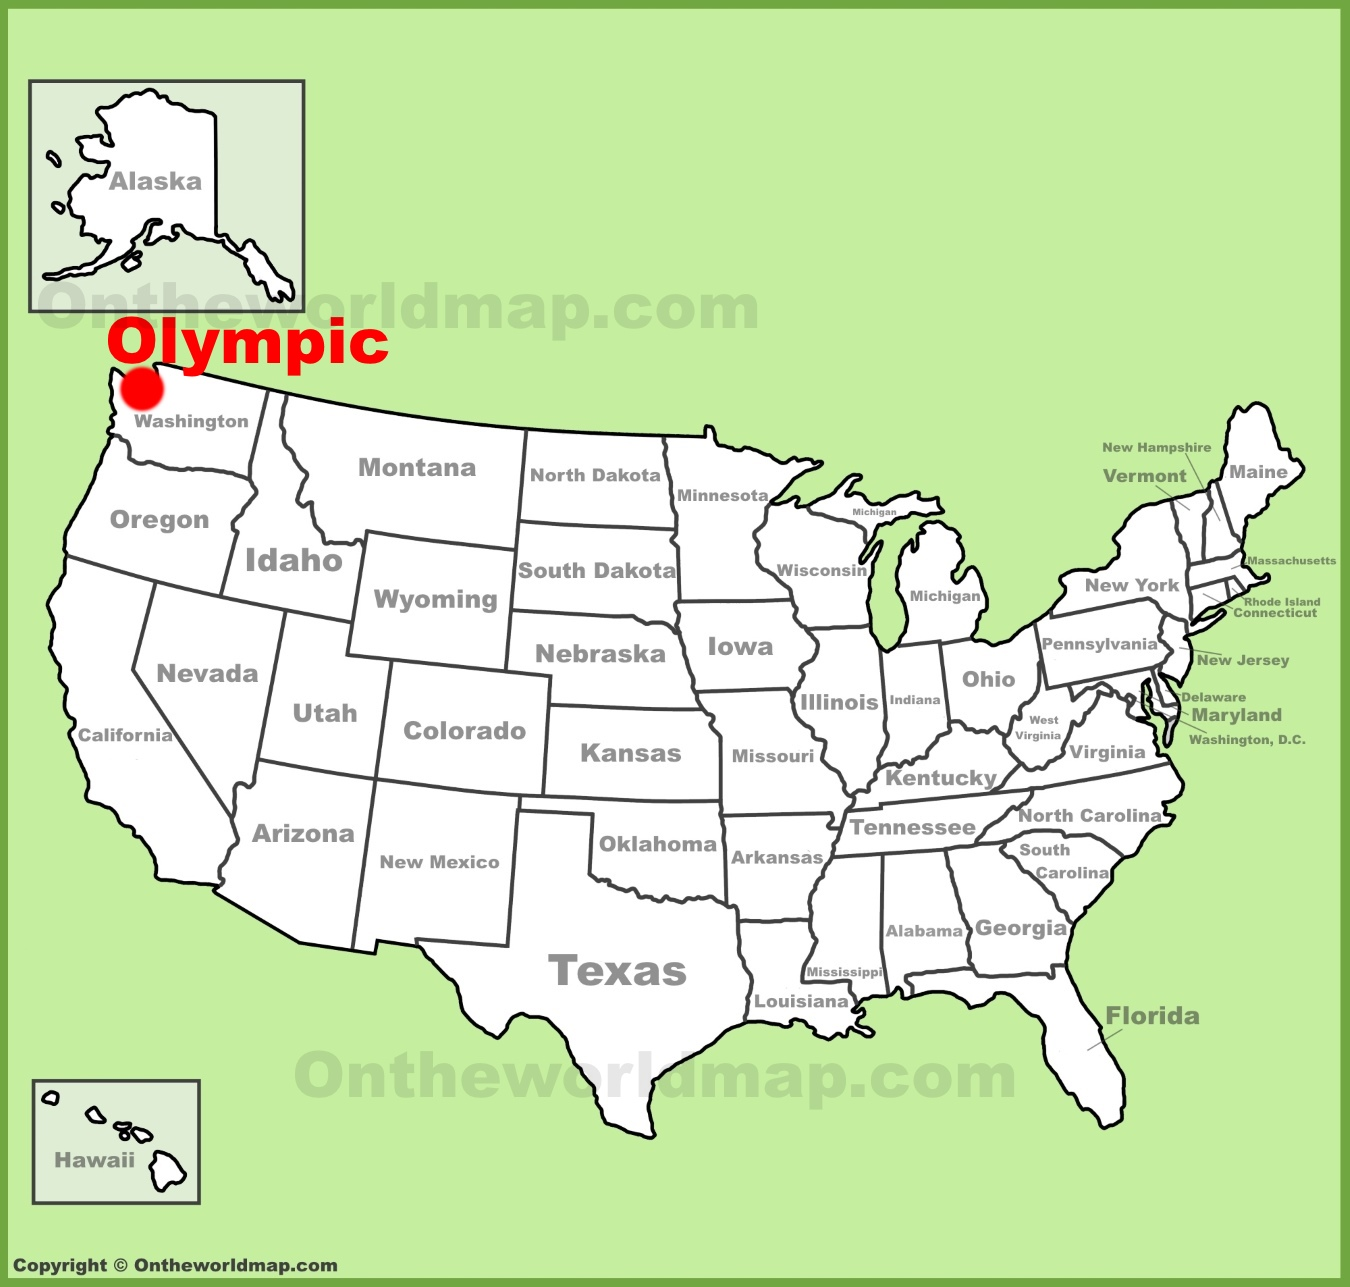 Olympic National Park location on the US Map